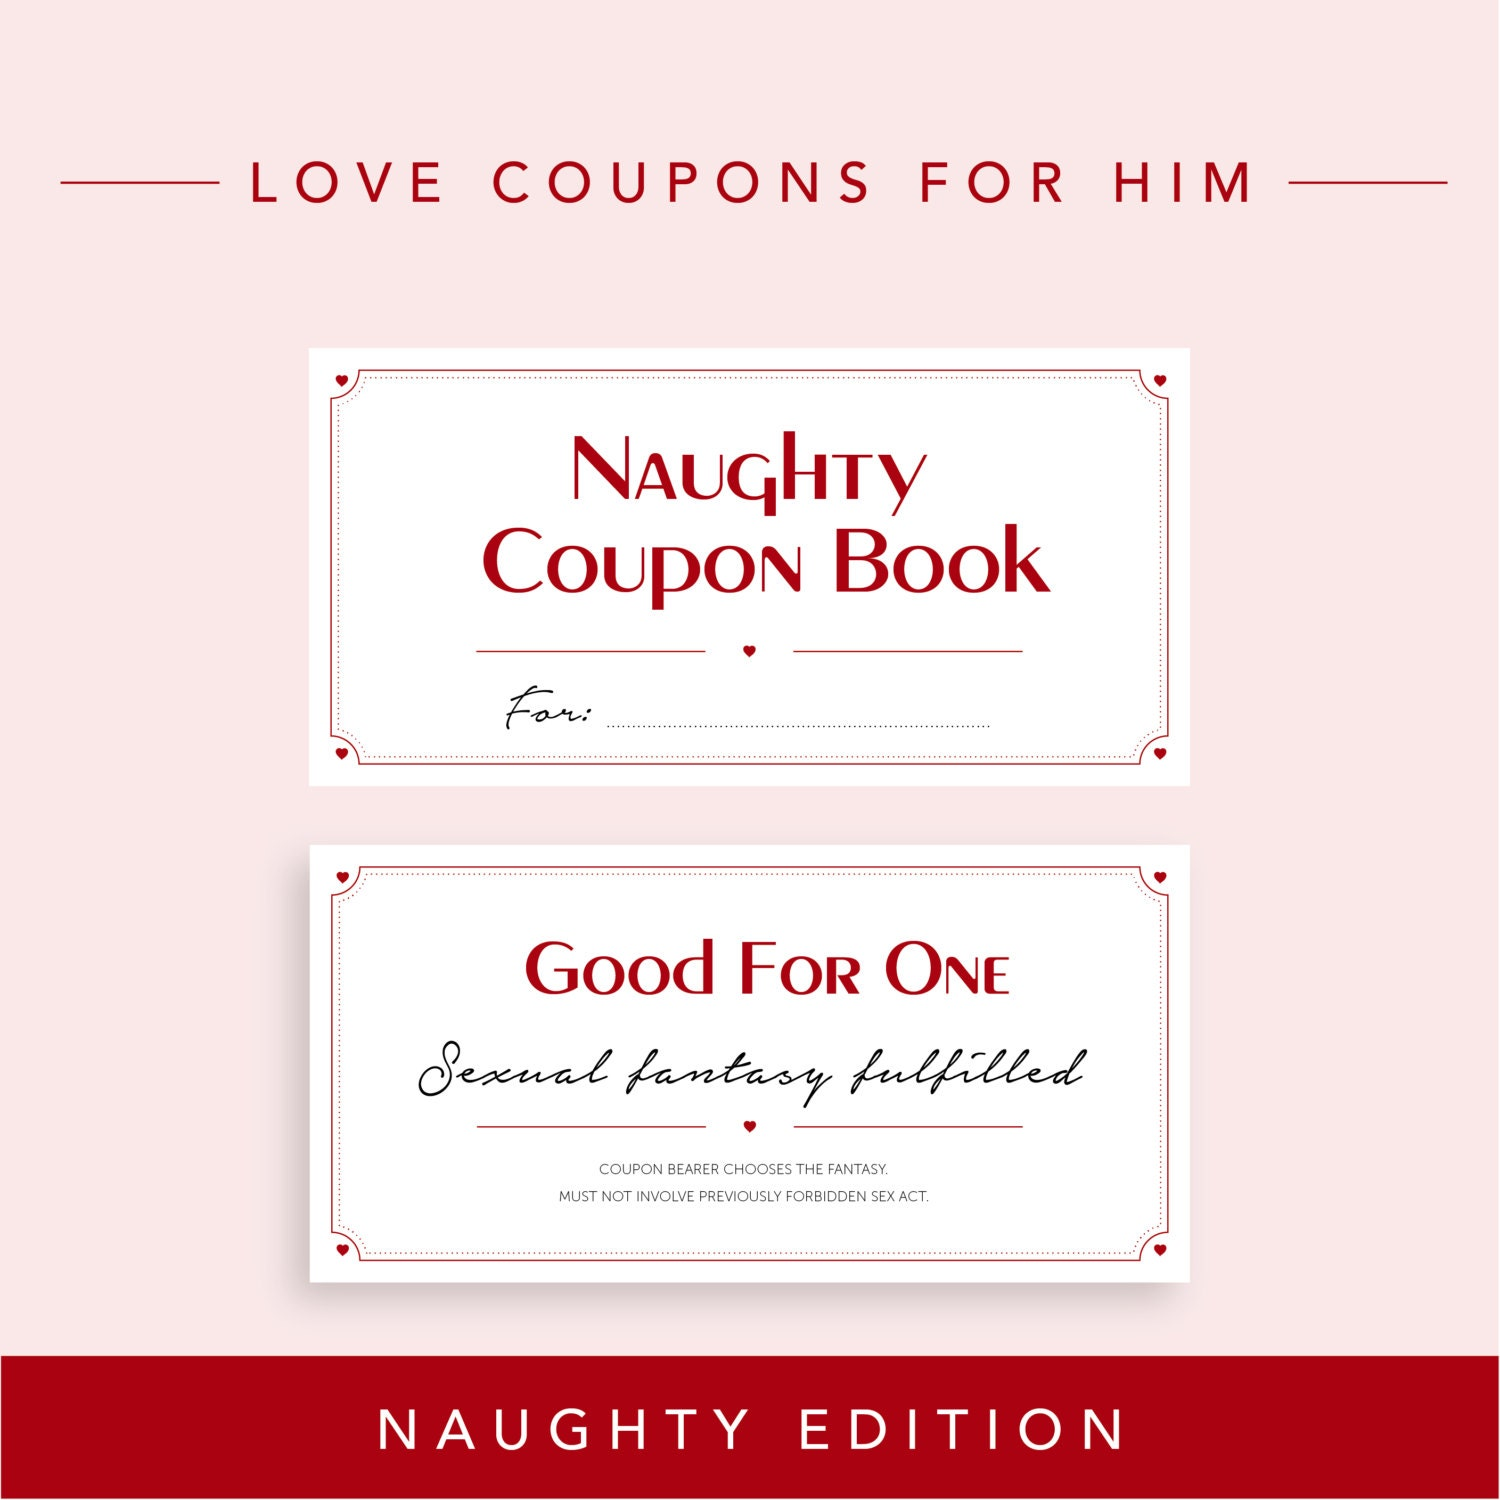 coupon book template for husband - naughty edition love coupons for boyfriend valentine 39 s